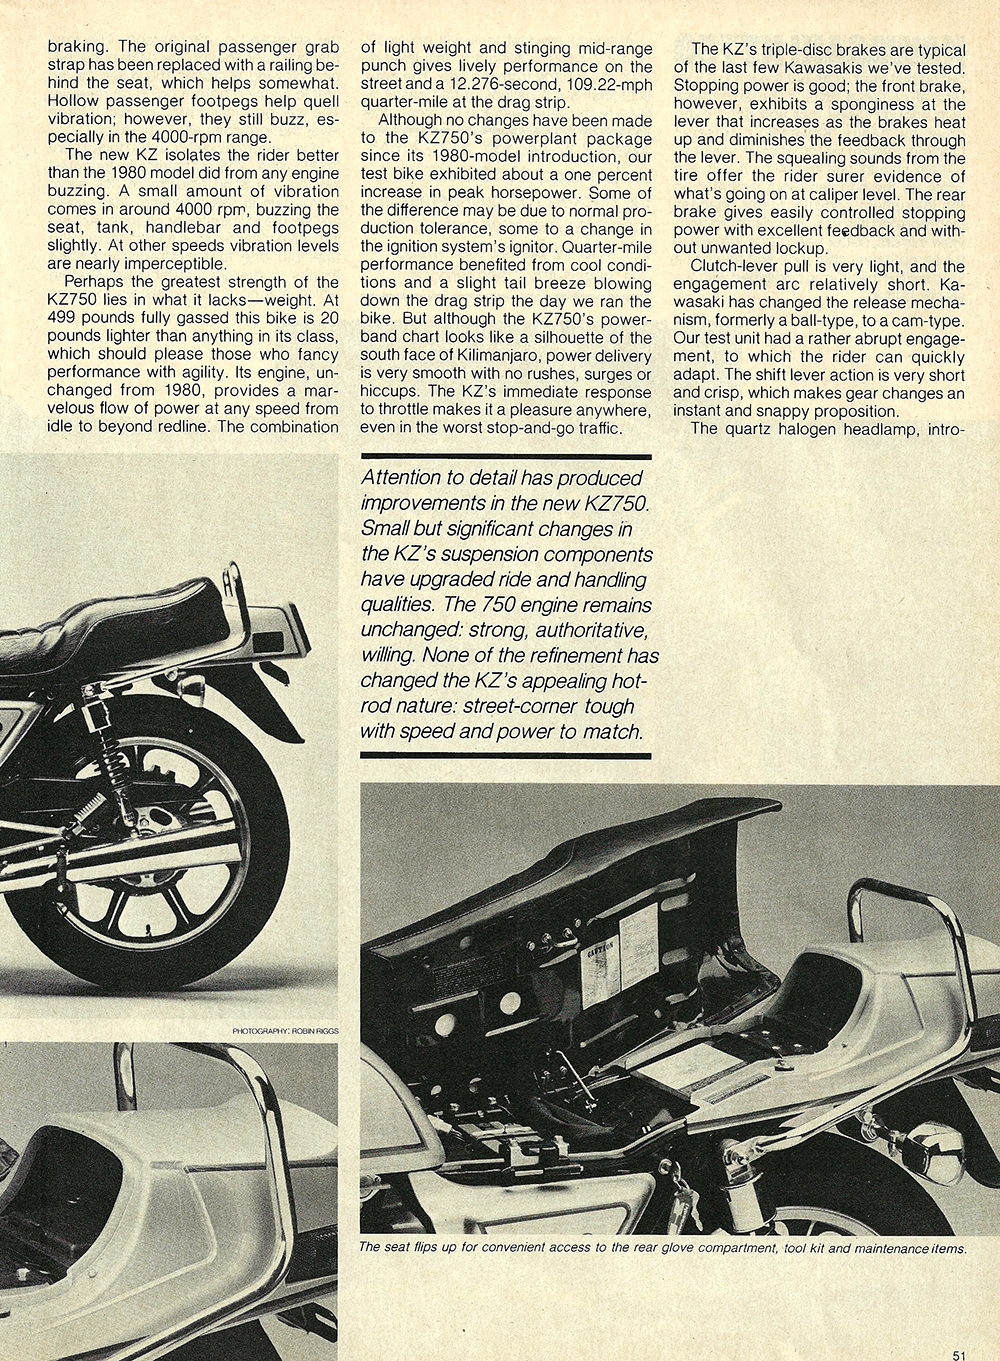 1982 Kawasaki kz750 road test 04.JPG